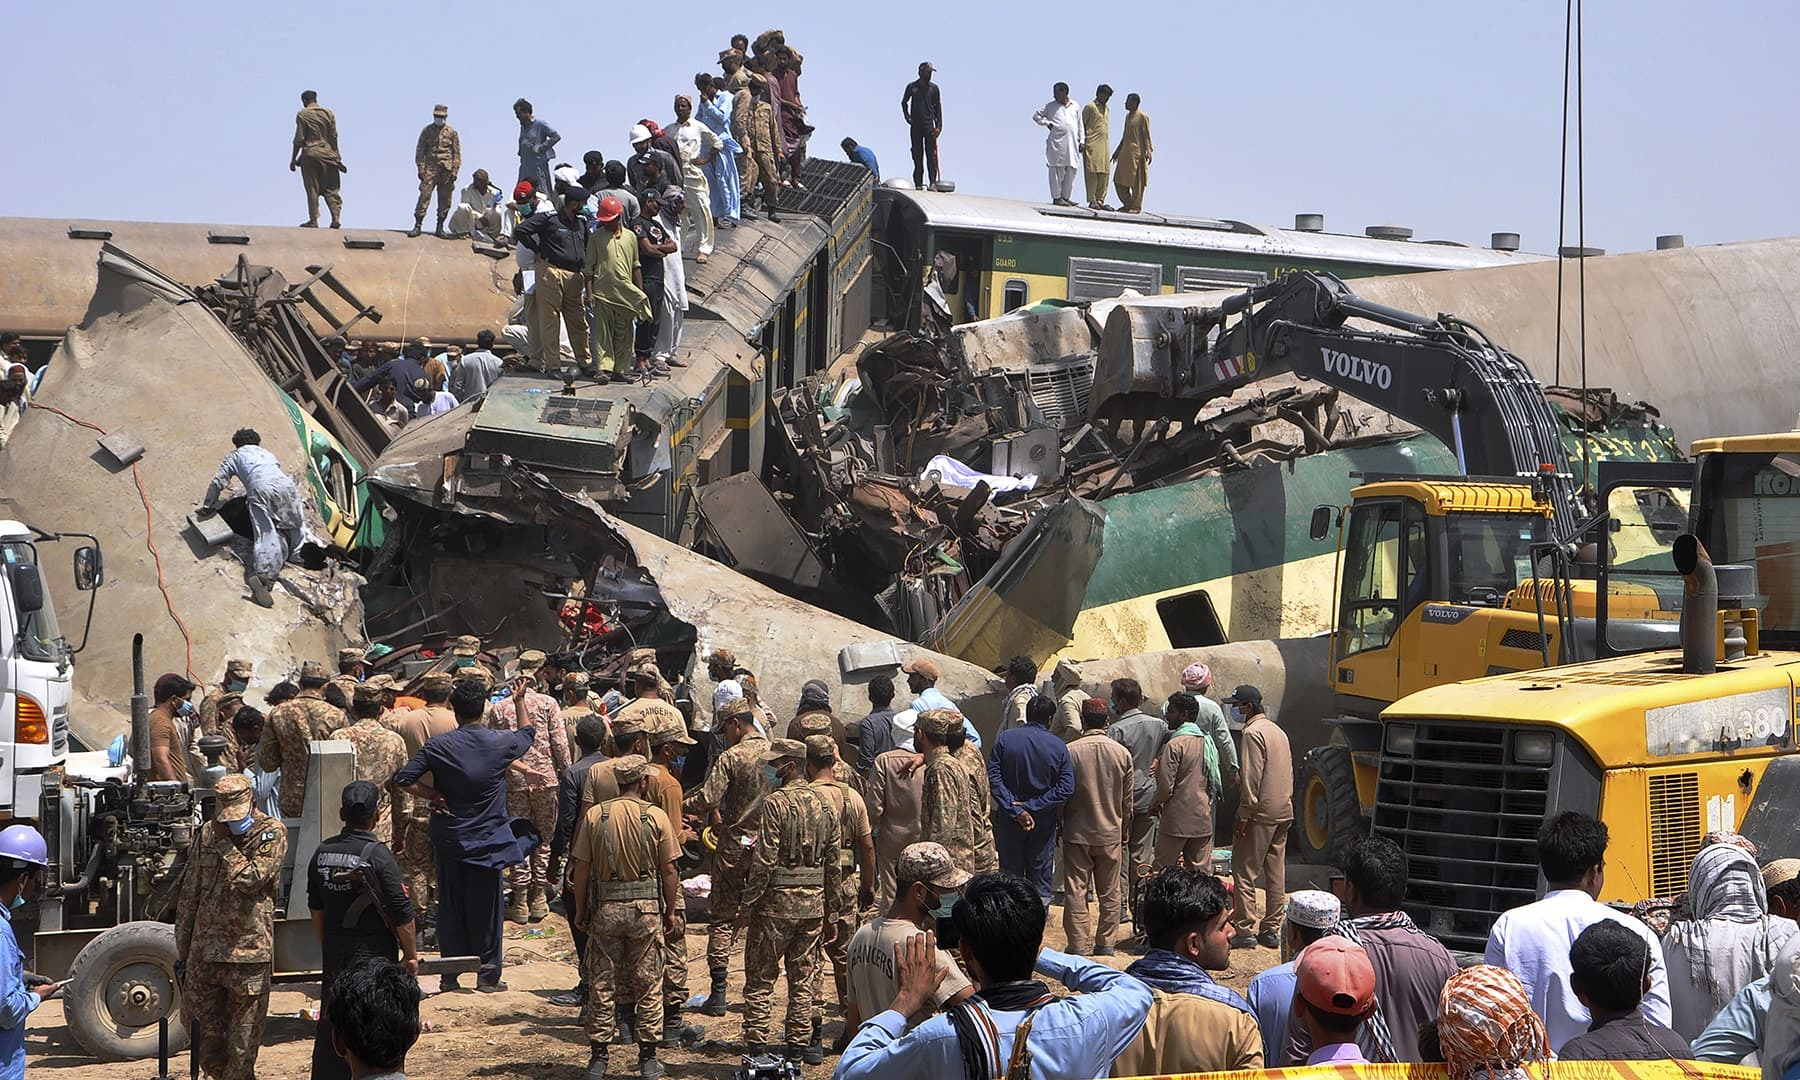 Soldiers and volunteers work at the site of a train collision in the Ghotki district in southern Pakistan, Monday, June 7, 2021. Two express trains collided in southern Pakistan early Monday, killing dozens of passengers, authorities said, as rescuers and villagers worked to pull injured people and more bodies from the wreckage. (AP Photo/Waleed Saddique) — Copyright 2021 The Associated Press. All rights reserved.